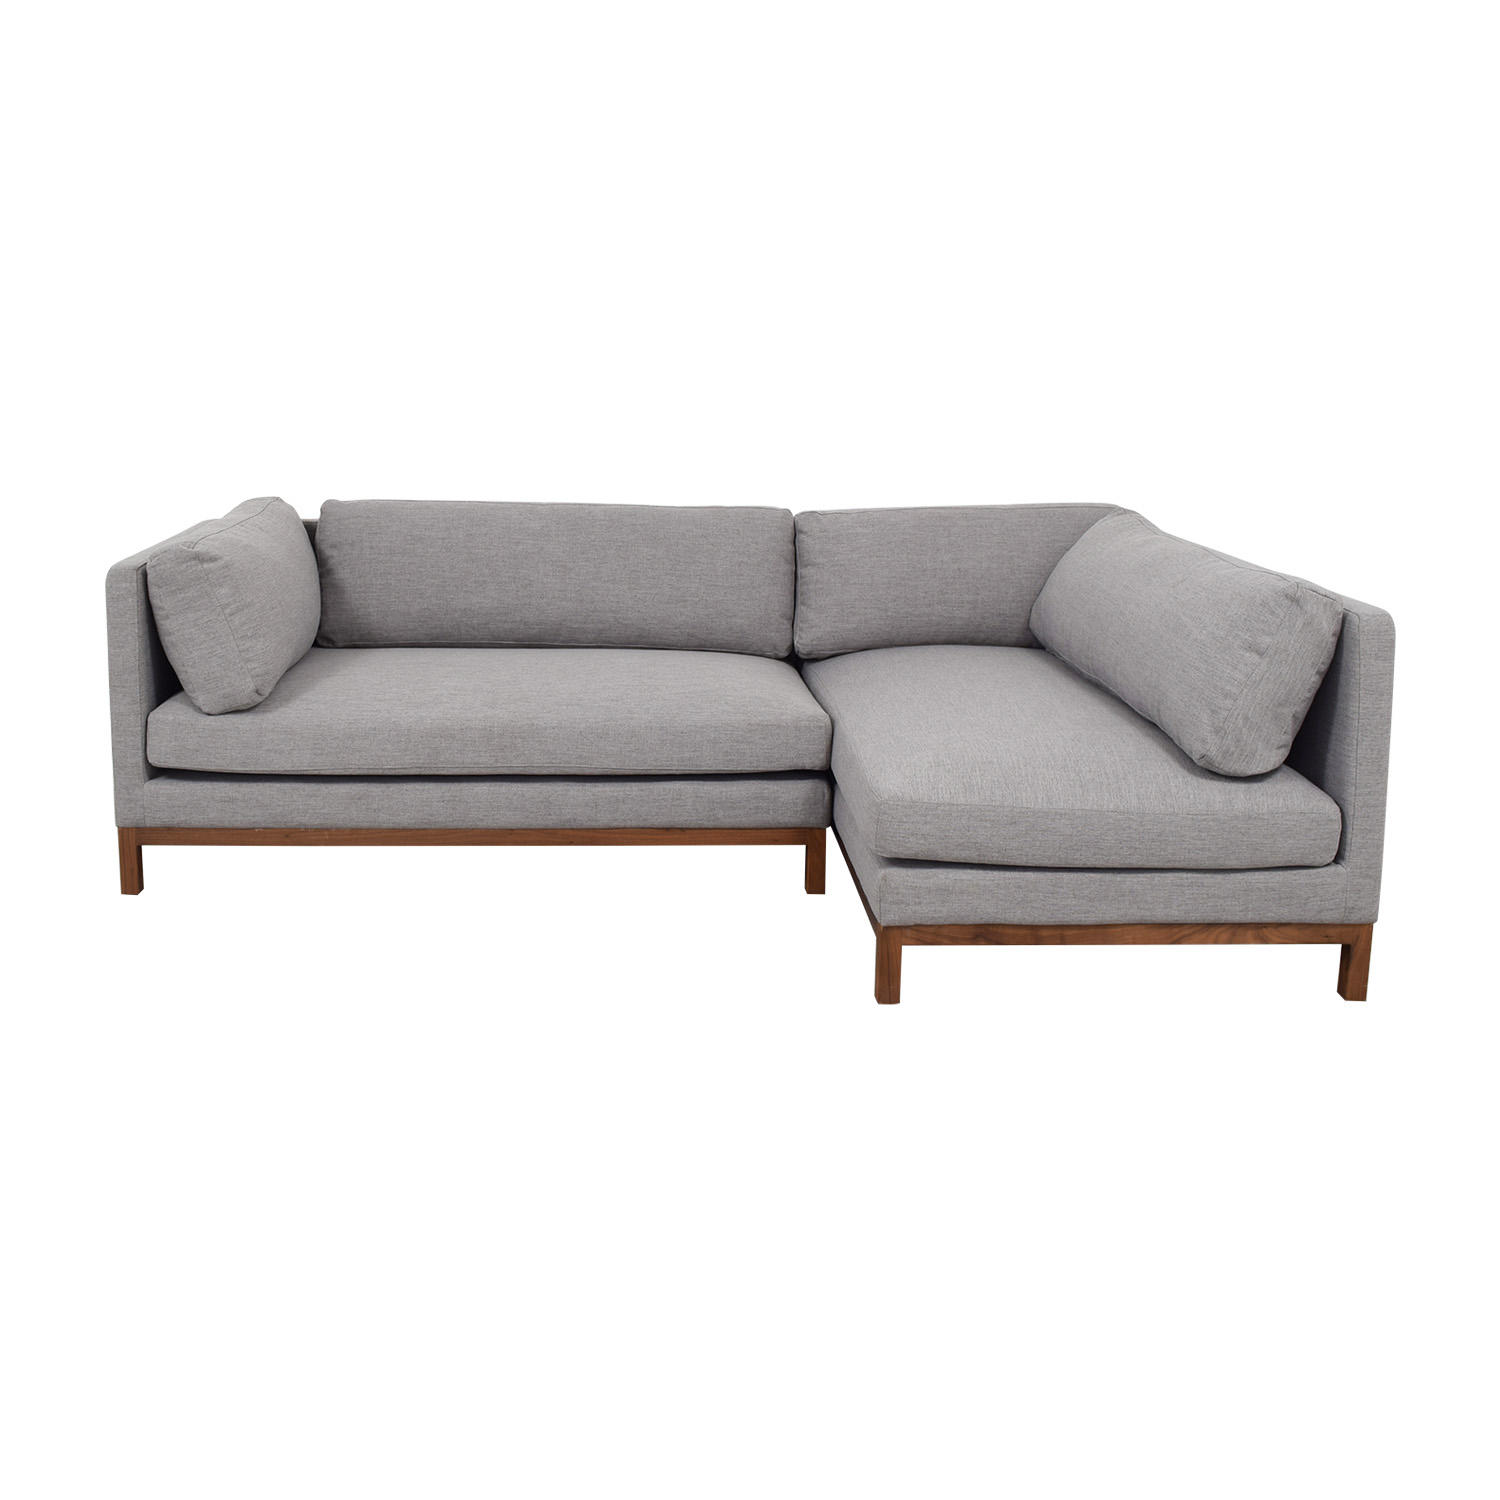 Amazing 50 Off Grey Chaise Sectional With Wood Base Sofas Beatyapartments Chair Design Images Beatyapartmentscom